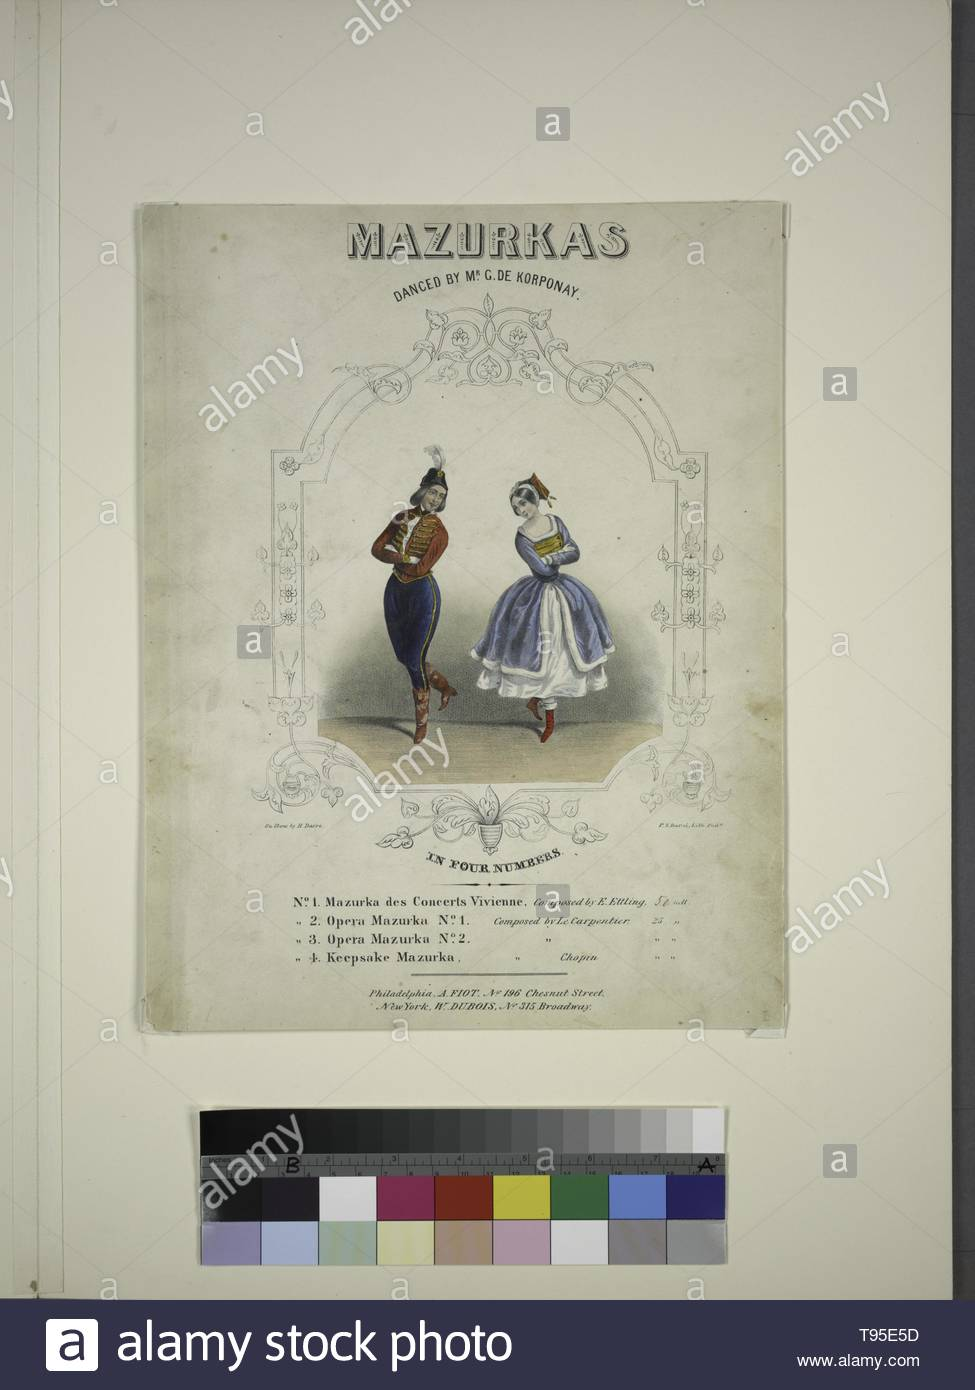 Anonymous-Mazurkas danced by Mr  G  De Korponay    [Lithograph] on stone by H  Dacre  P  S  Duval, Lith  Phila - Stock Image